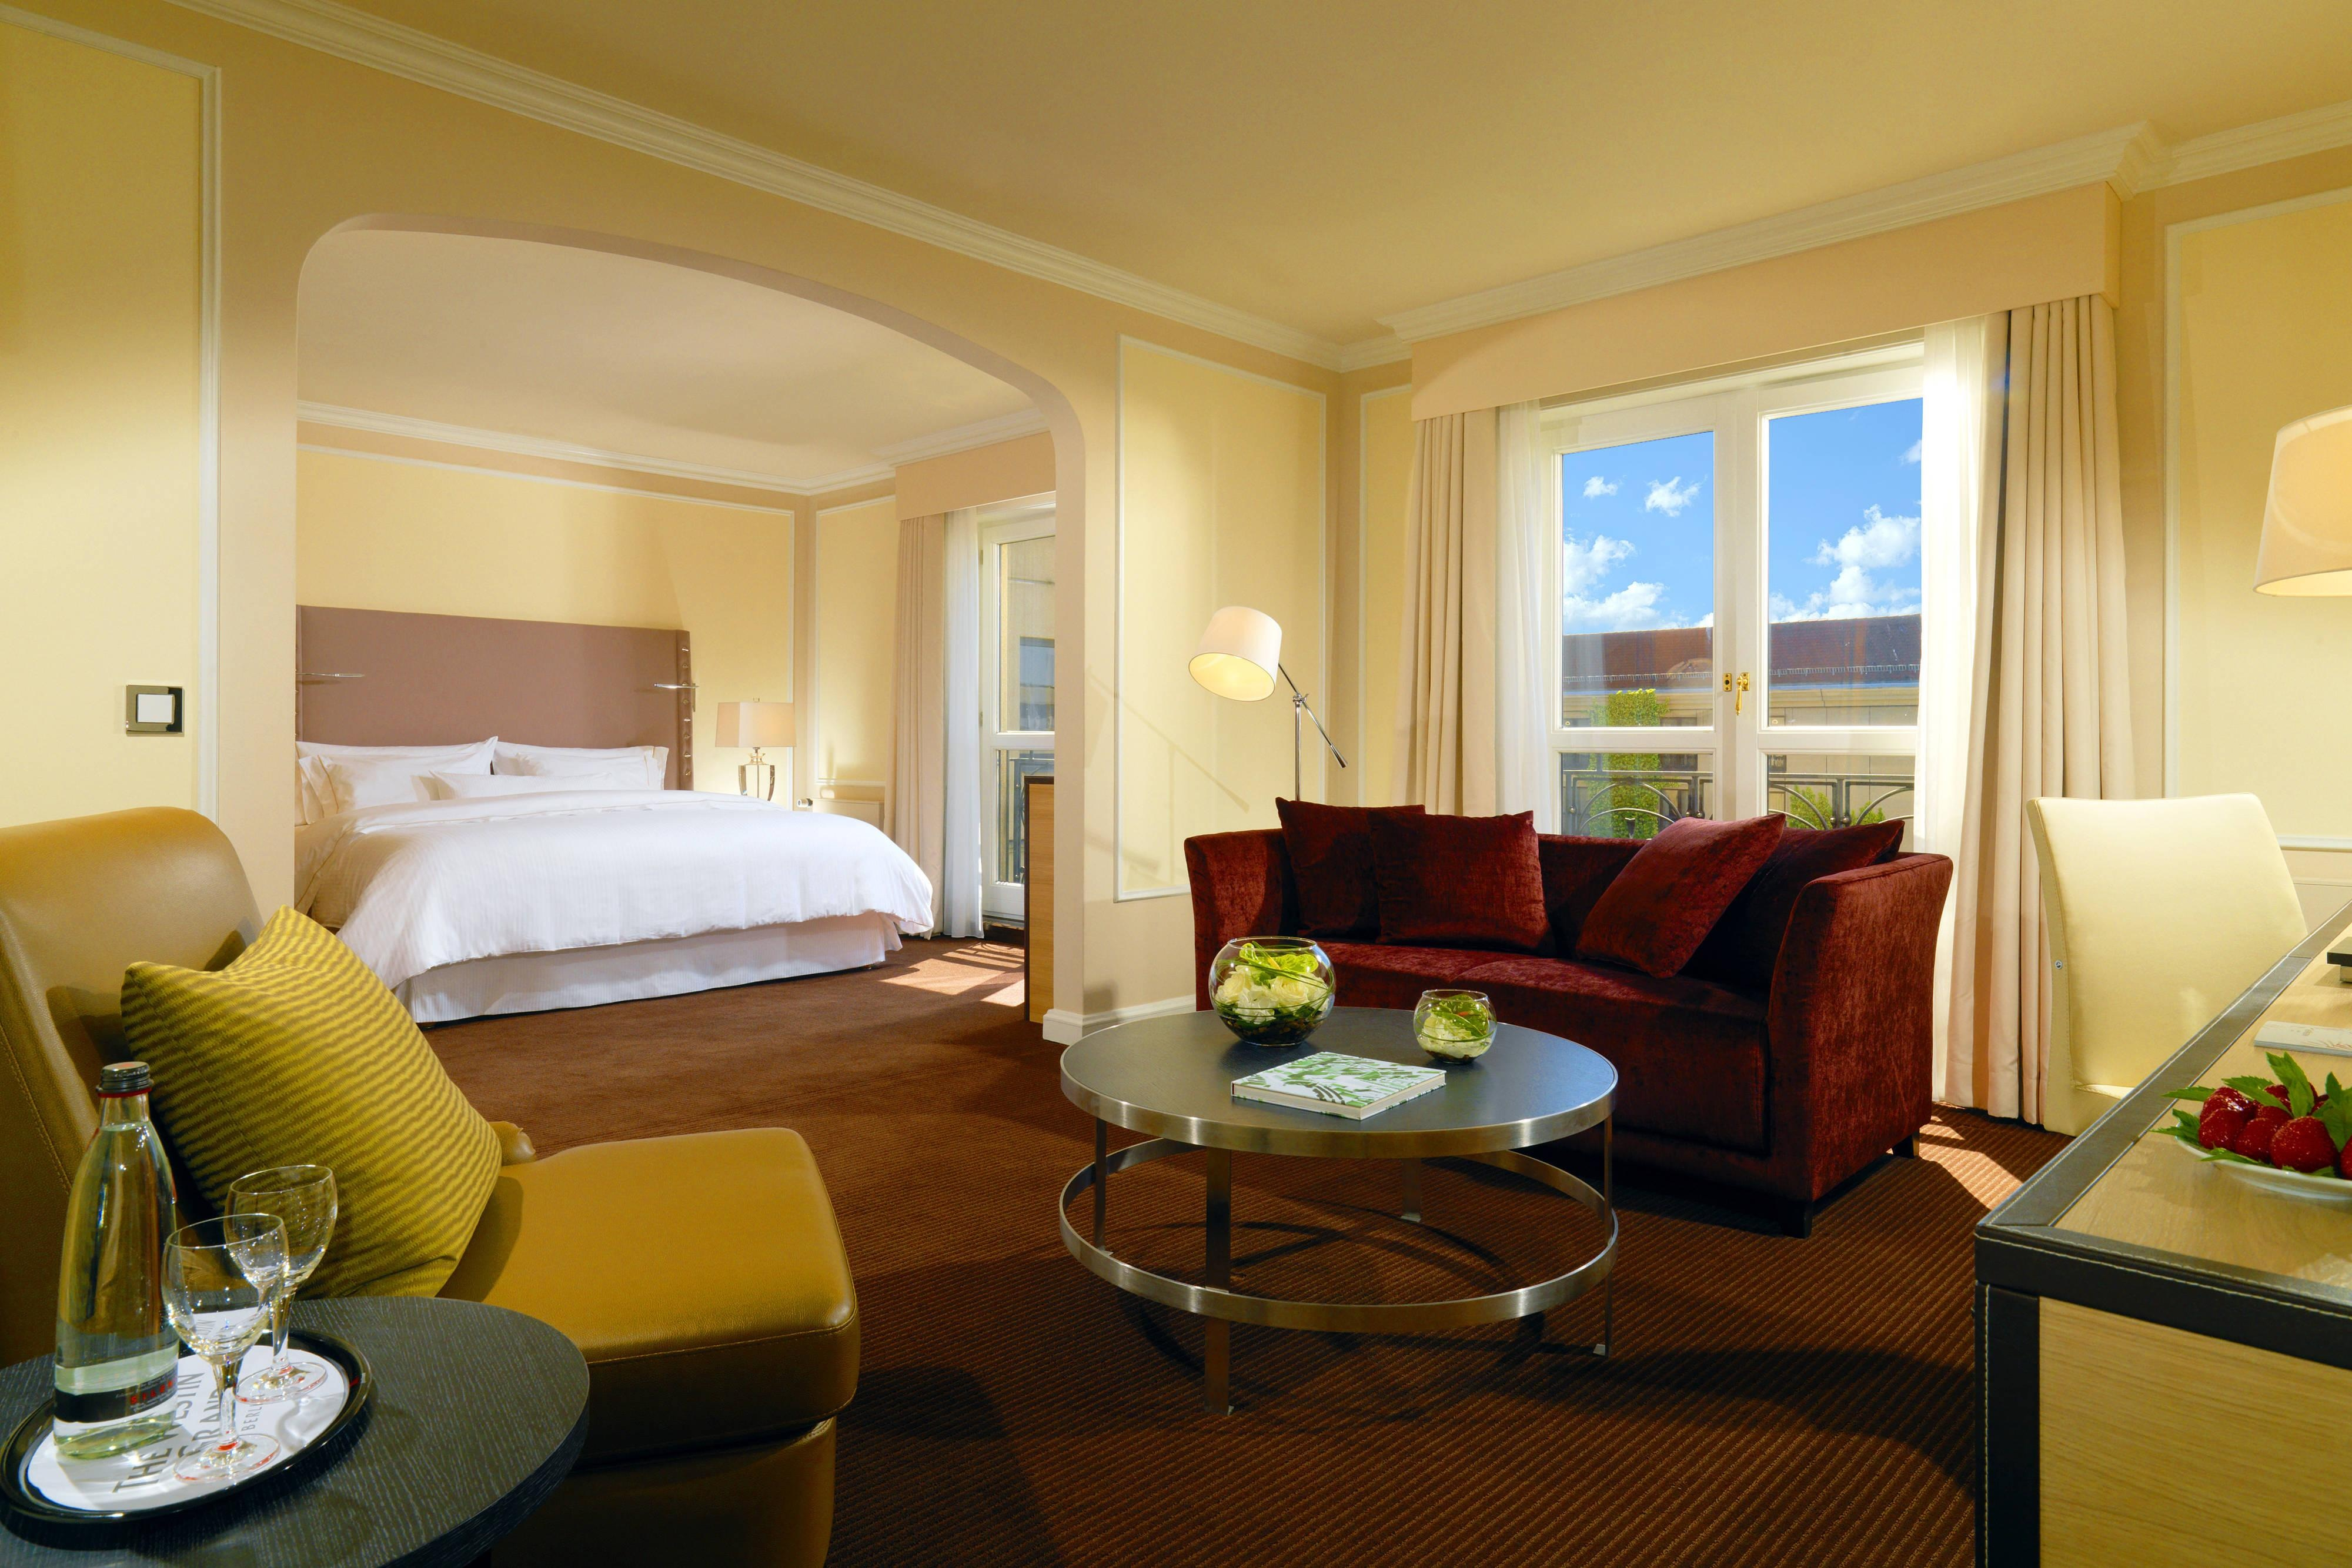 Your suite in Berlin - Junior Suite at The Westin Grand hotel